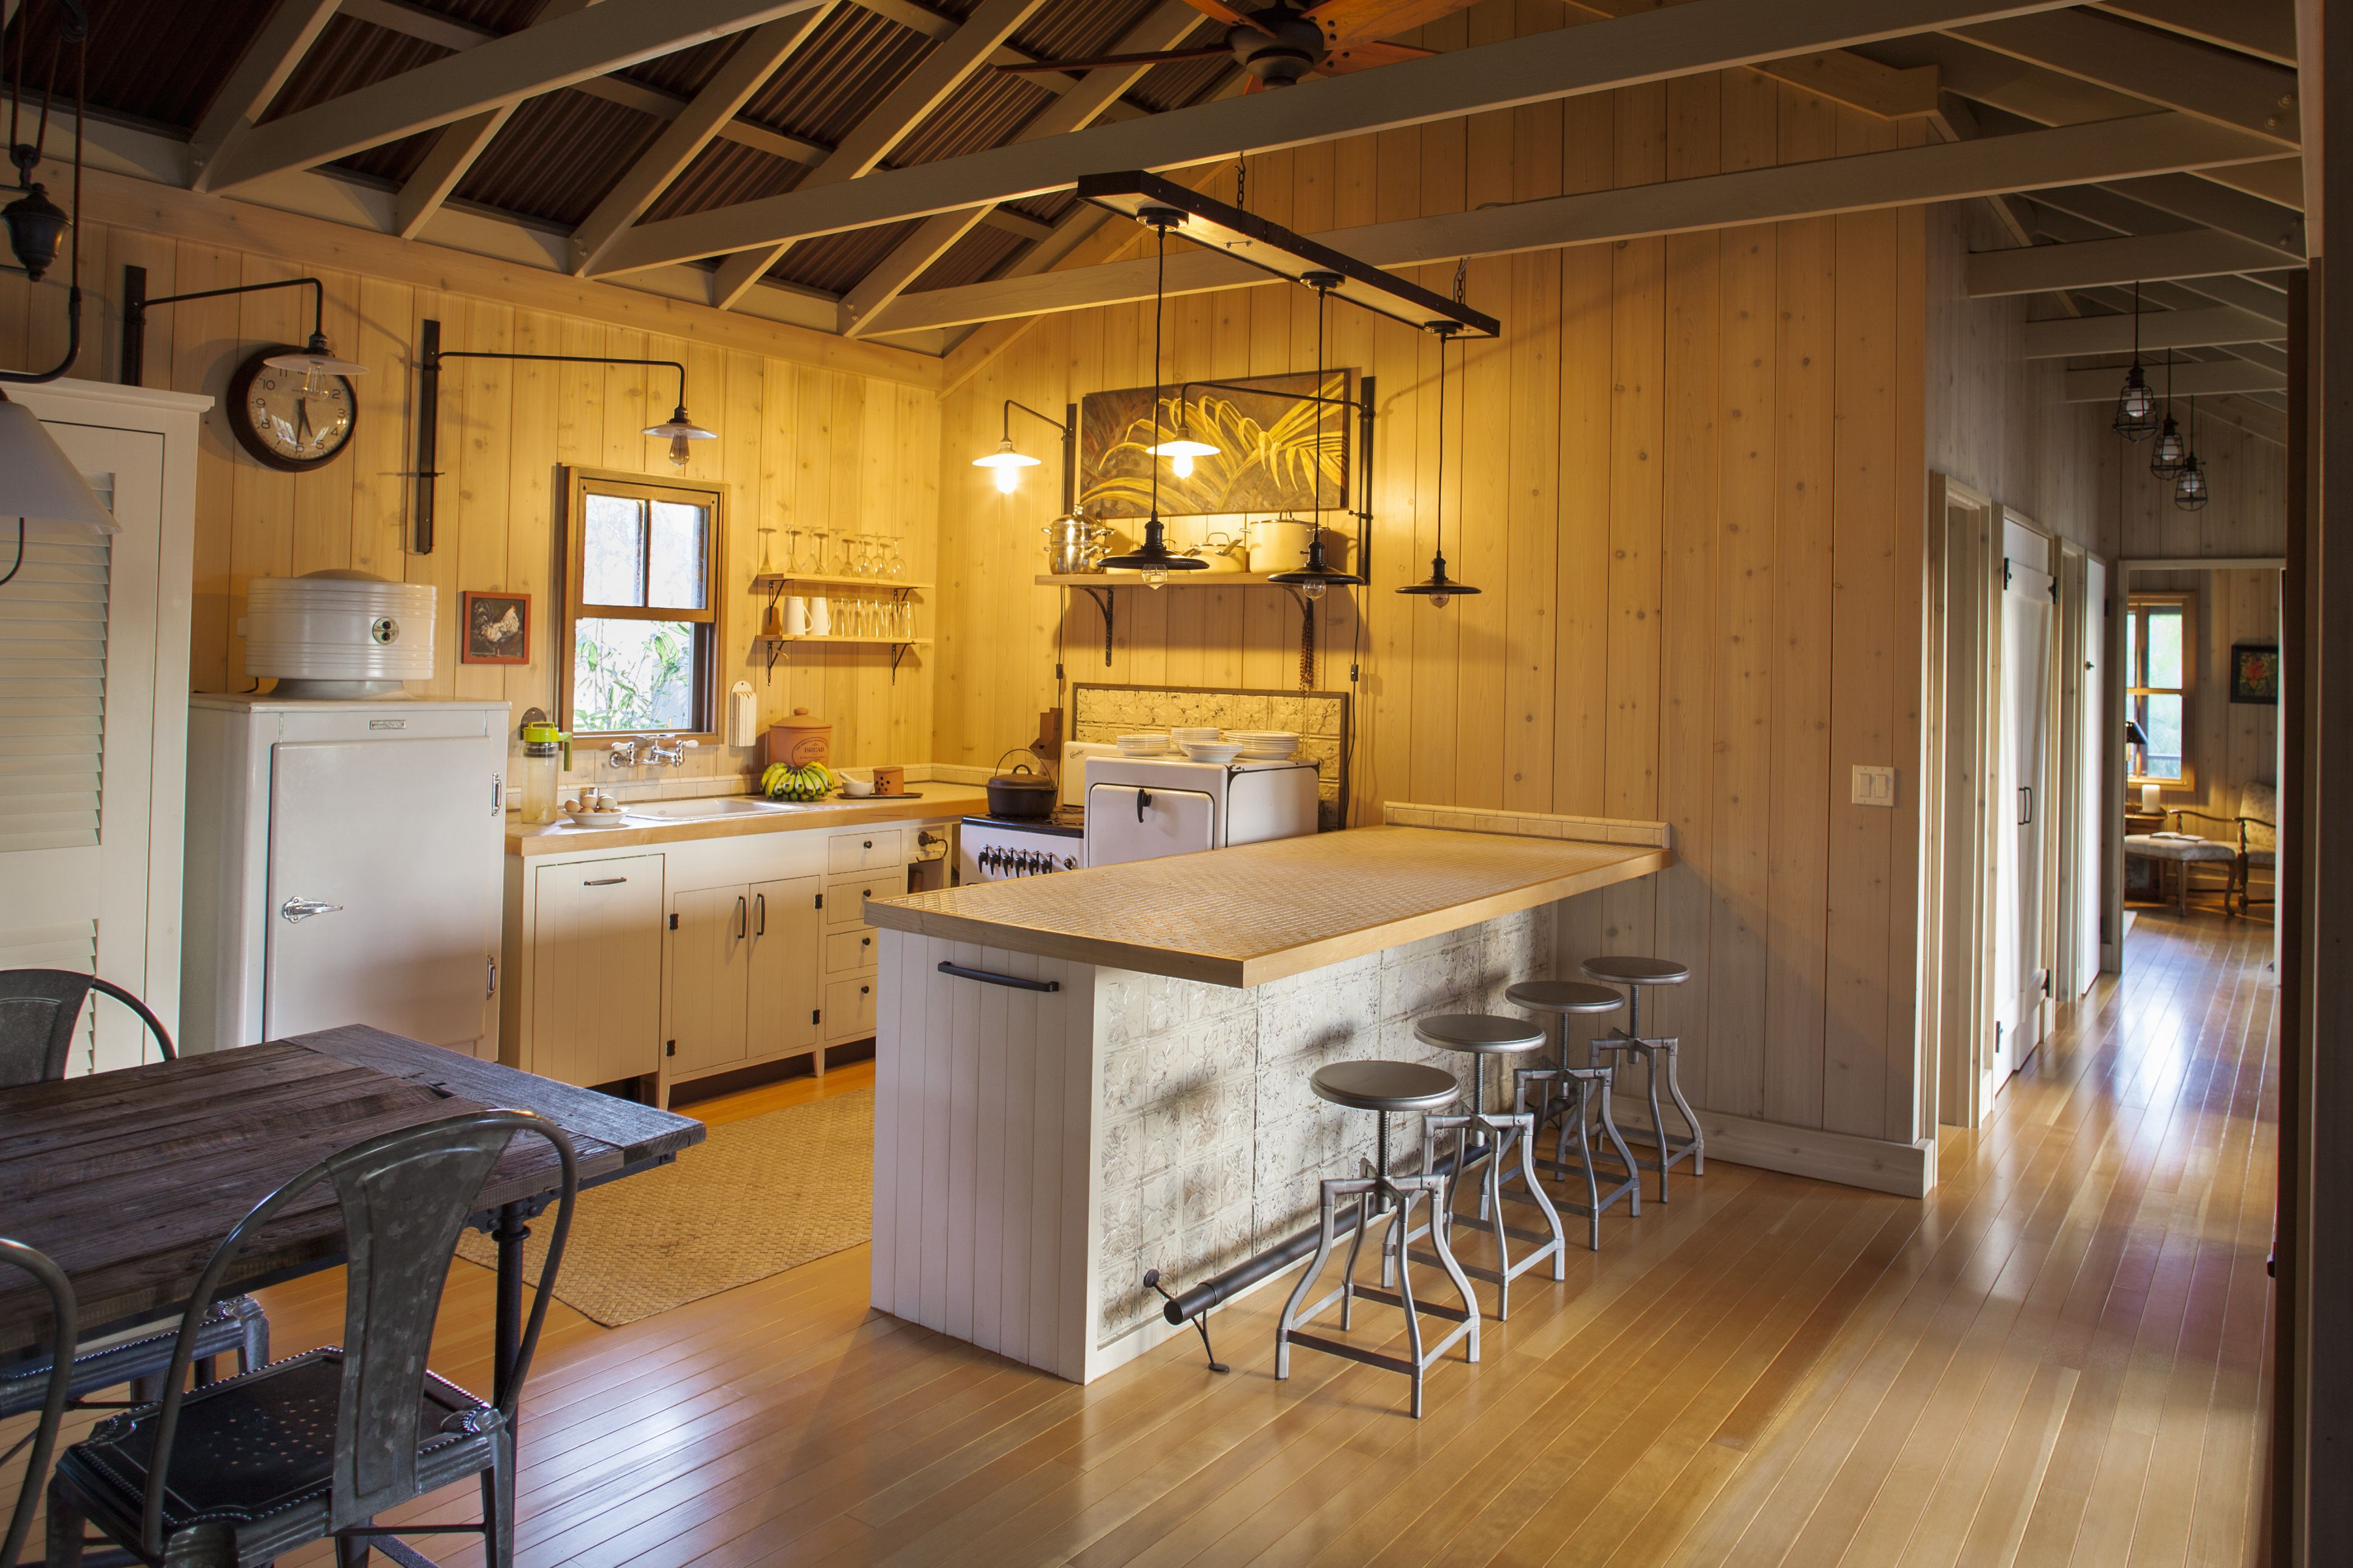 Can You Expose Ceiling Joists For That Open Beam Look